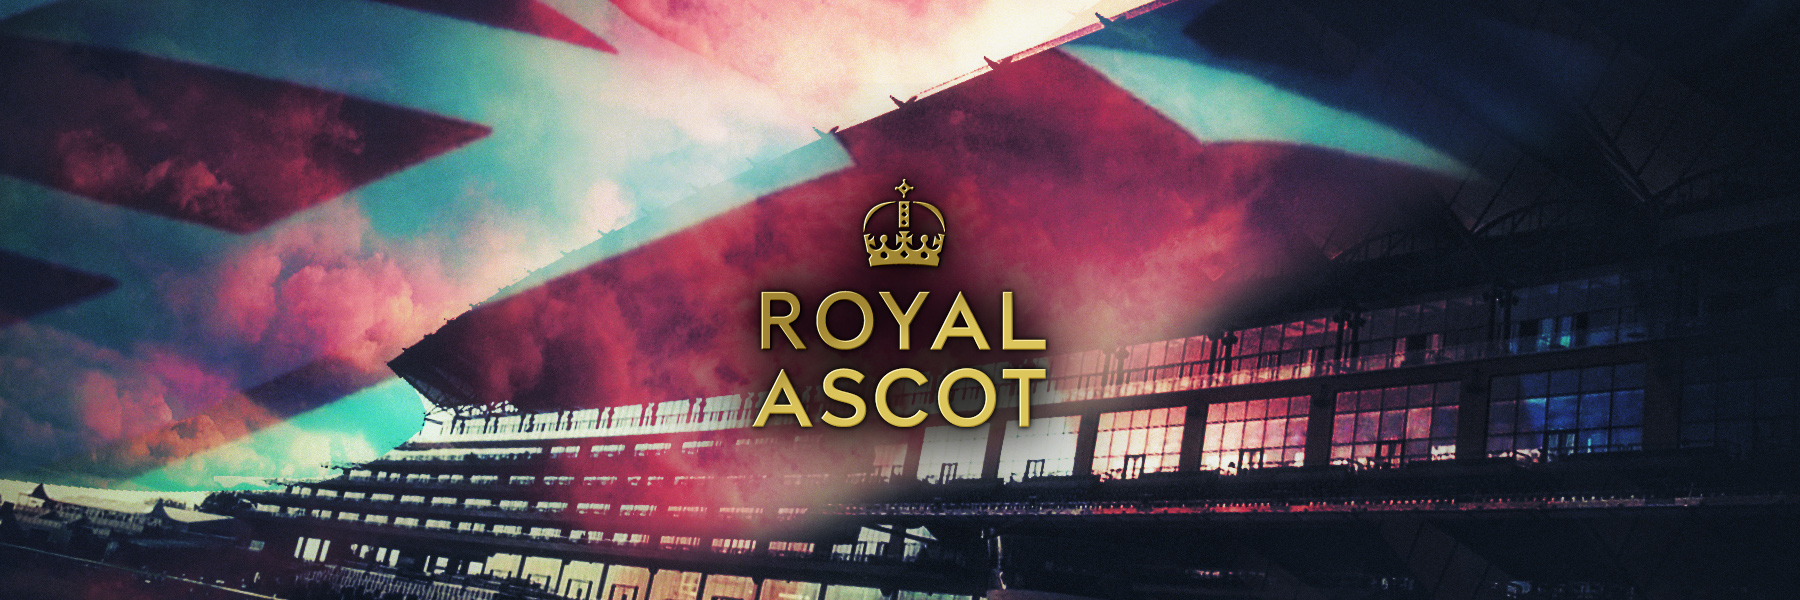 Musings From My Grade 1 Couch: Royal Ascot Analysis for June 17th, 2020